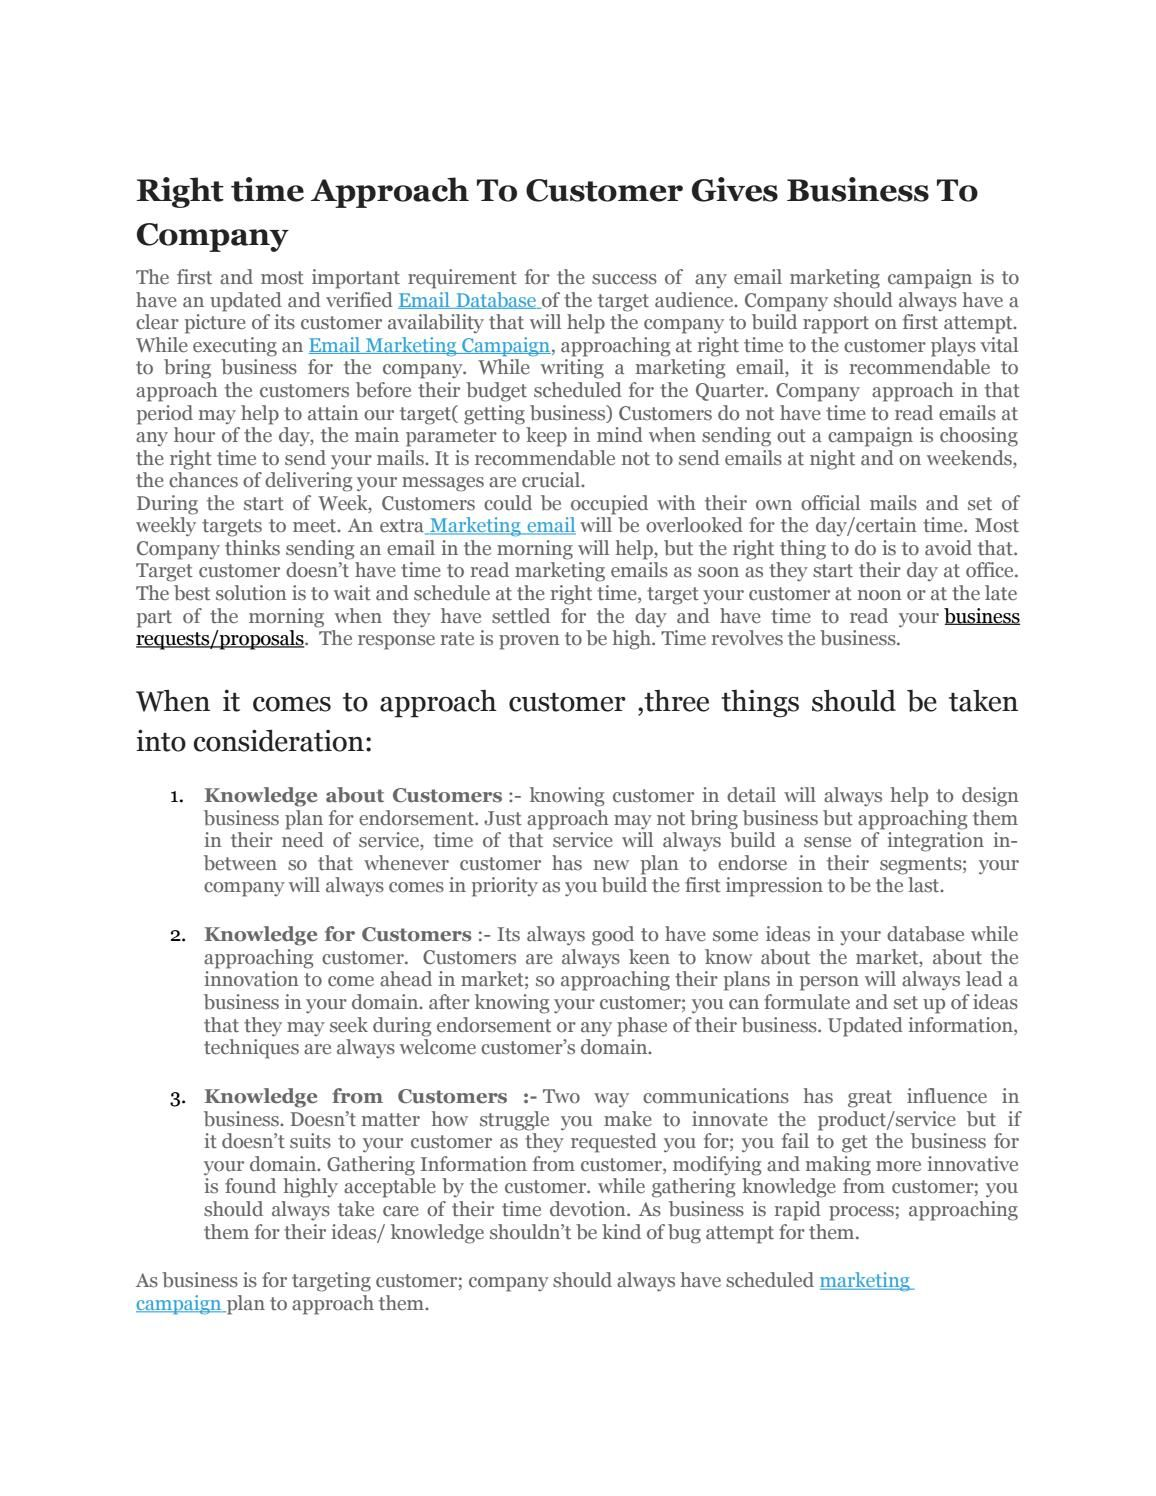 Right timRight time Approach To Customer Gie approach to